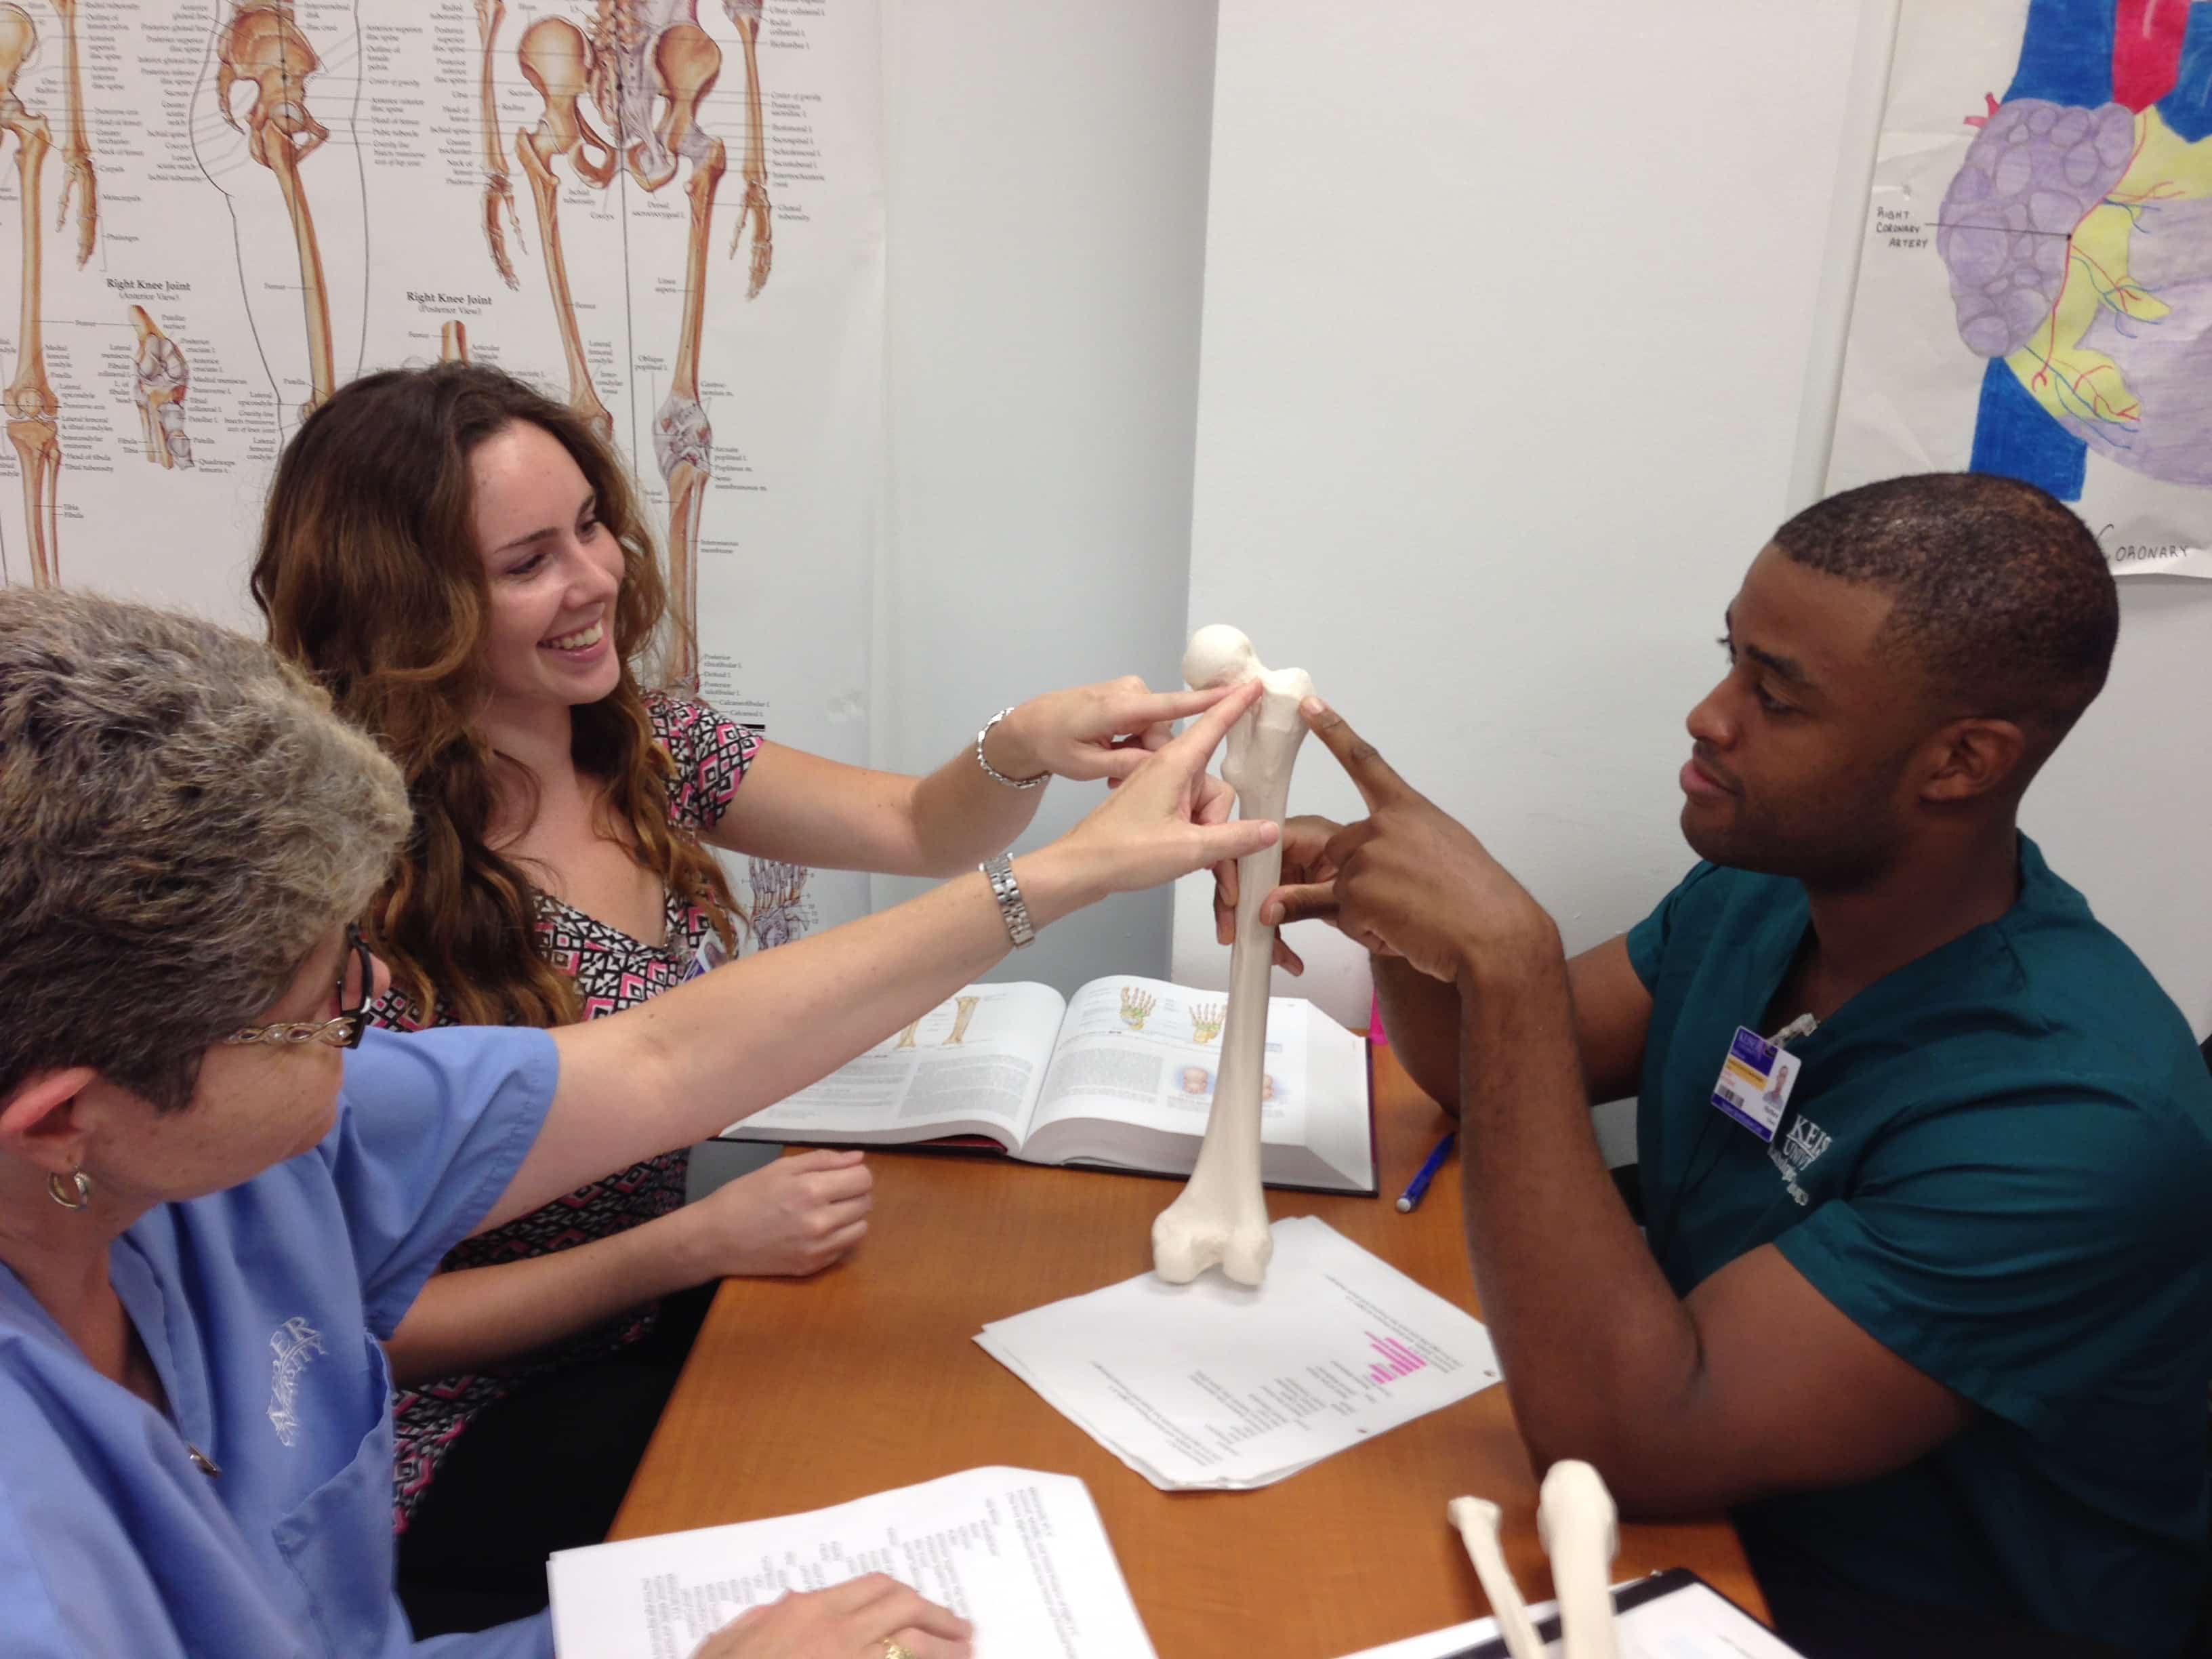 A & P Students at the Melbourne Campus Get a Lesson in Bones